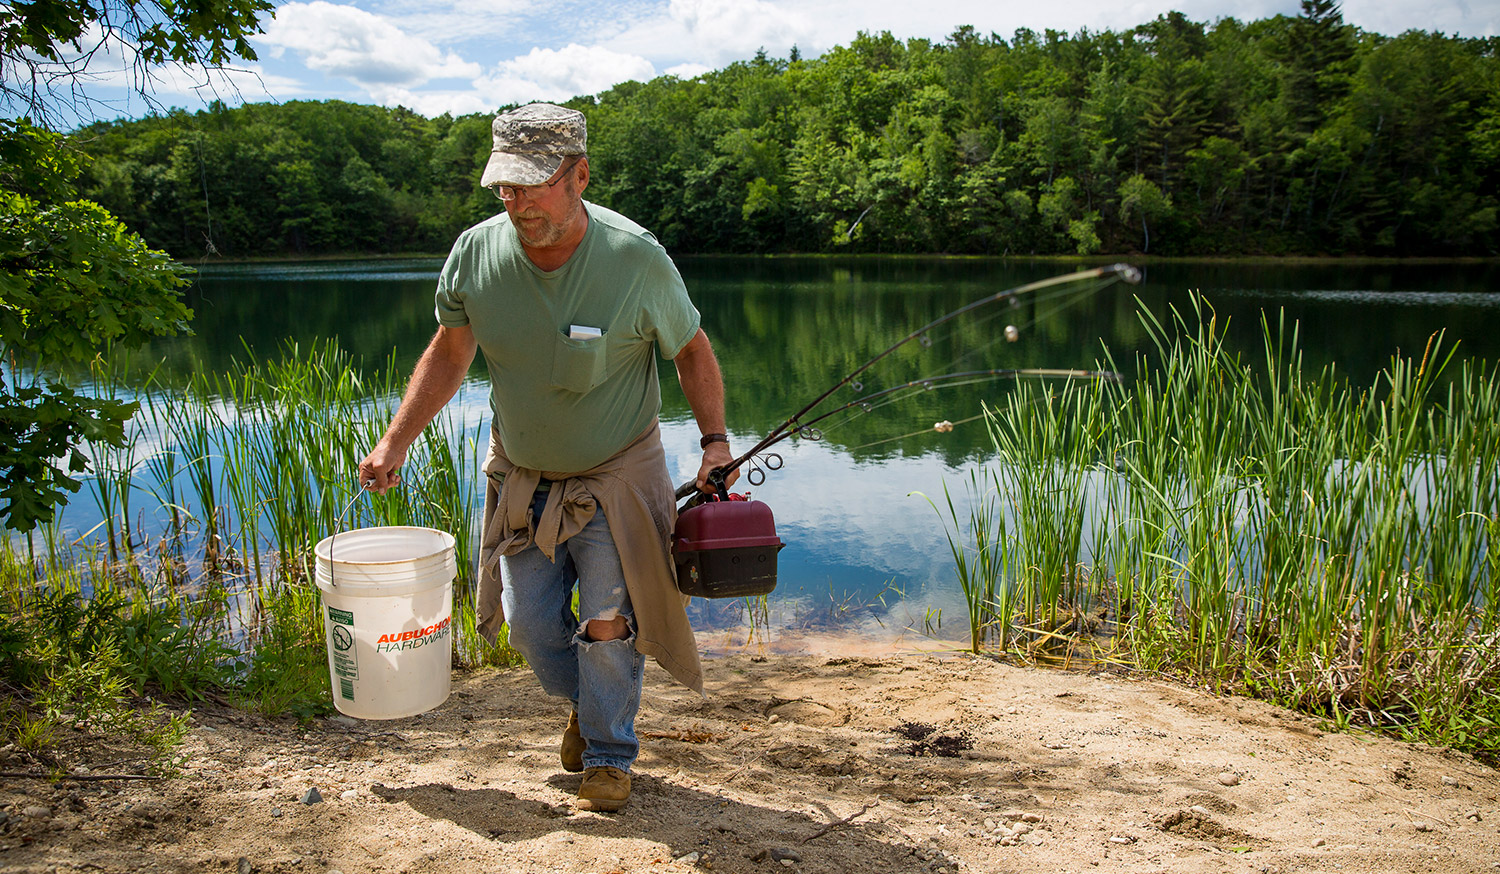 sebago lake dating site Fishing opportunities in the southern maine/sebago lake region more useful resources in this area: campgrounds/lodging , outfitters , guide services , outdoor gear , boat dealer and yards , information , and marinas.